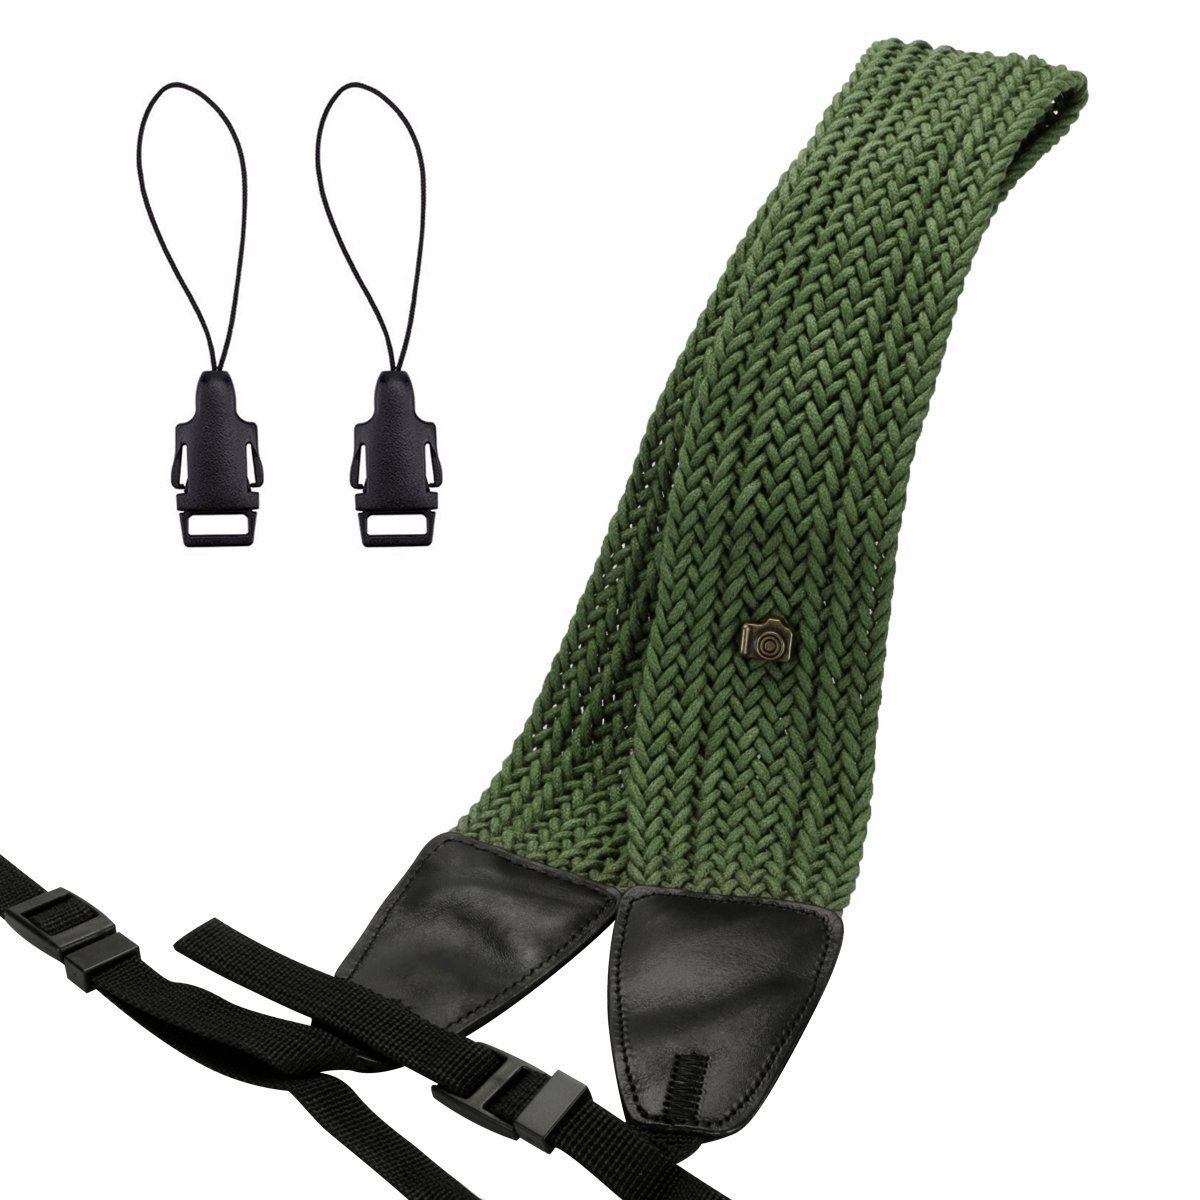 Eggsnow Camera Shoulder Neck Strap Knit Broaden Universal Camera Belt Strap with Connect Buckle for Women Men All DSLR SLR Nikon Canon Sony Olympus Pentax Samsung(Upgraded)-Green